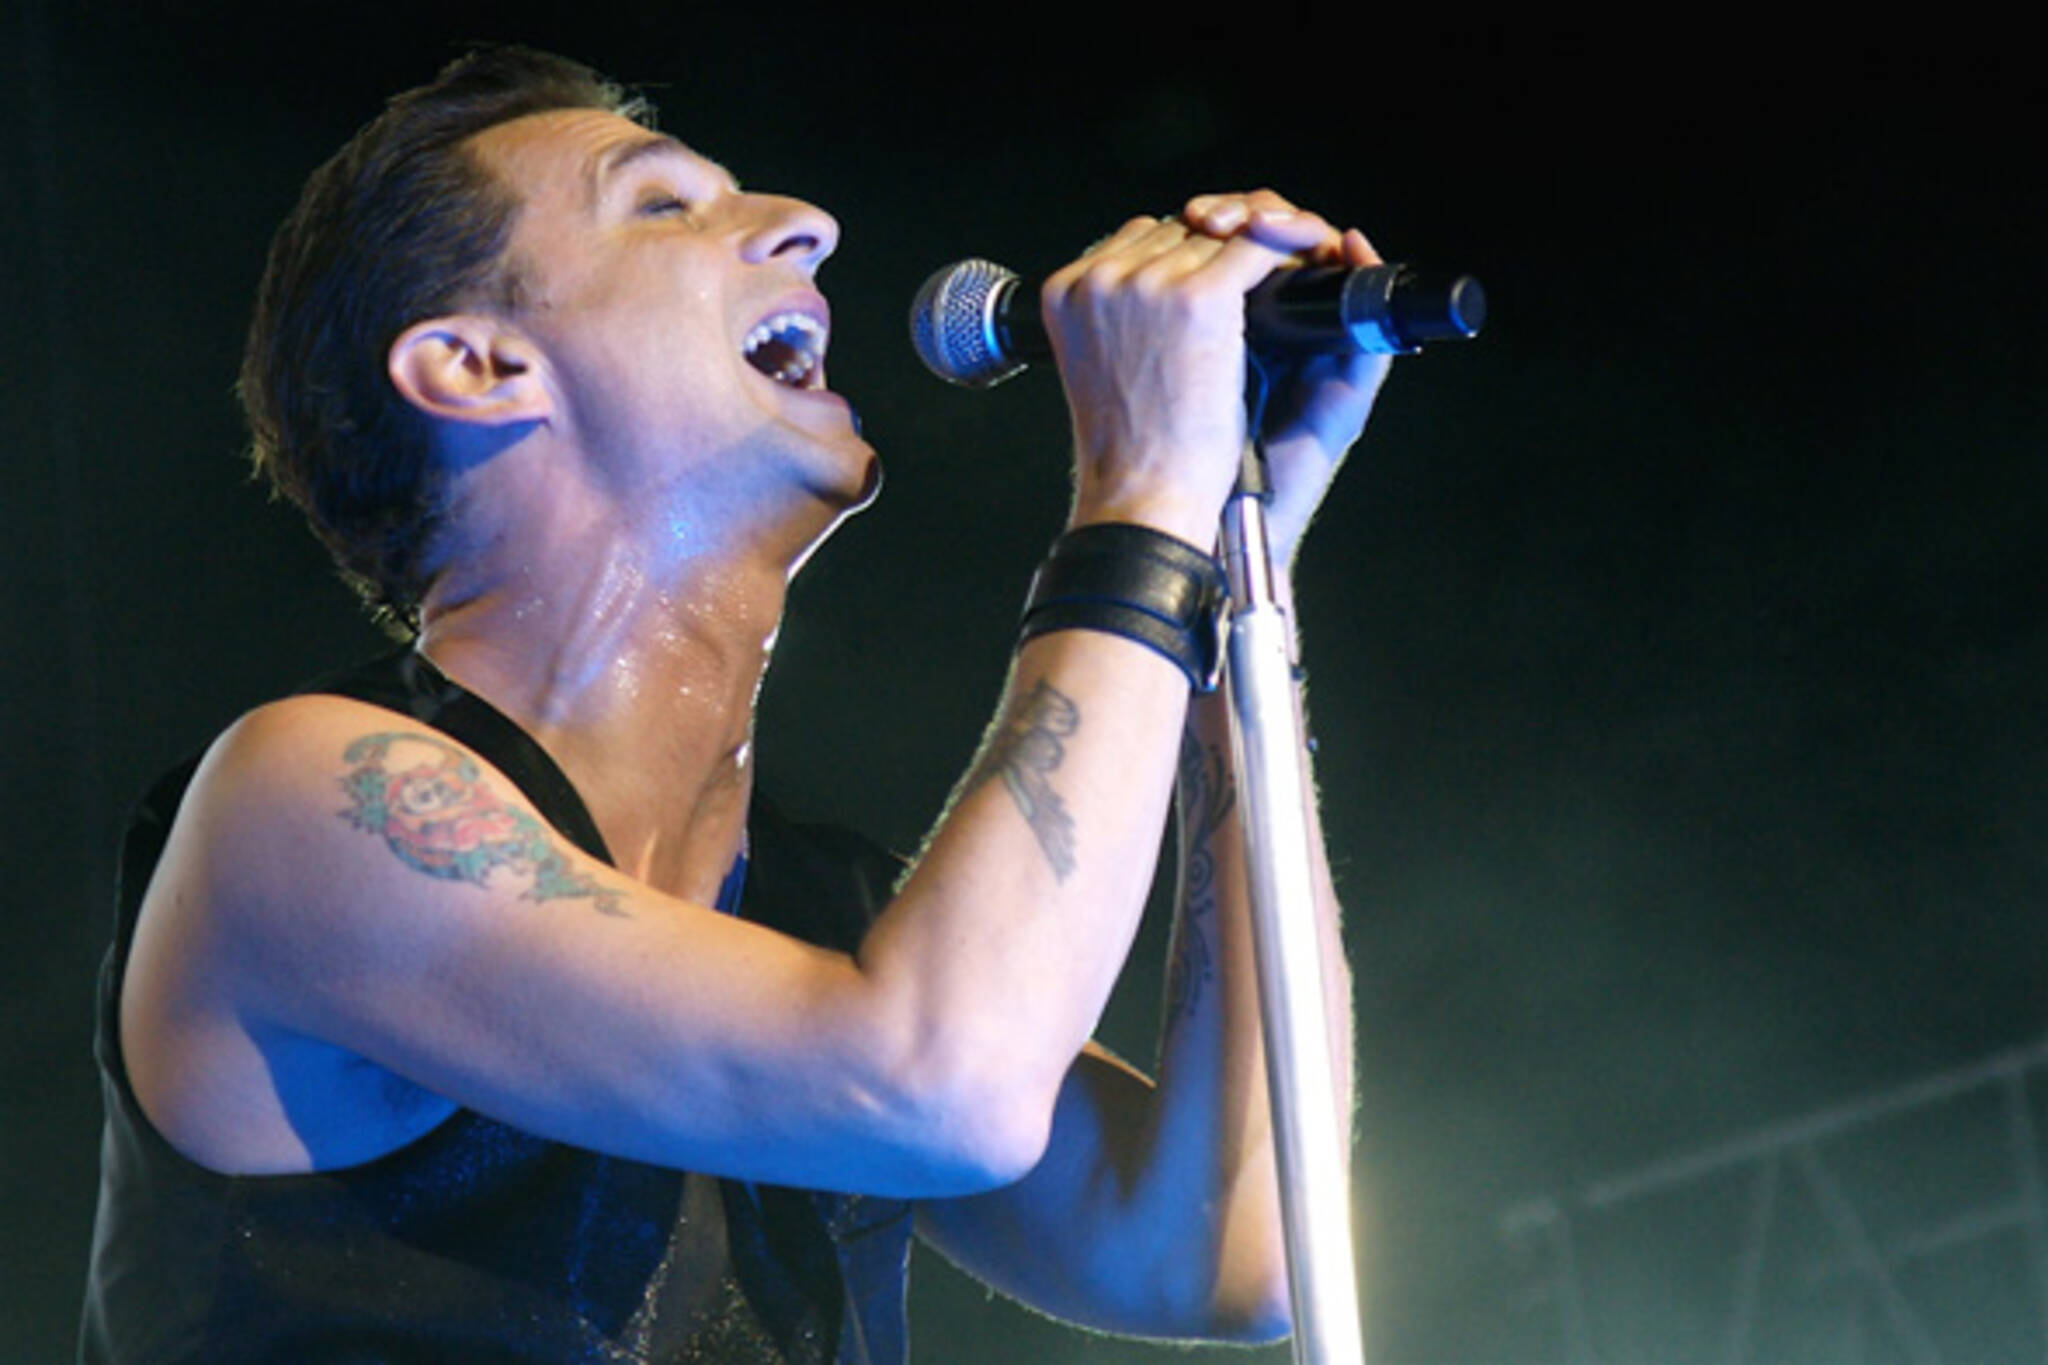 Dave Gahan at Depeche Mode concert in Toronto